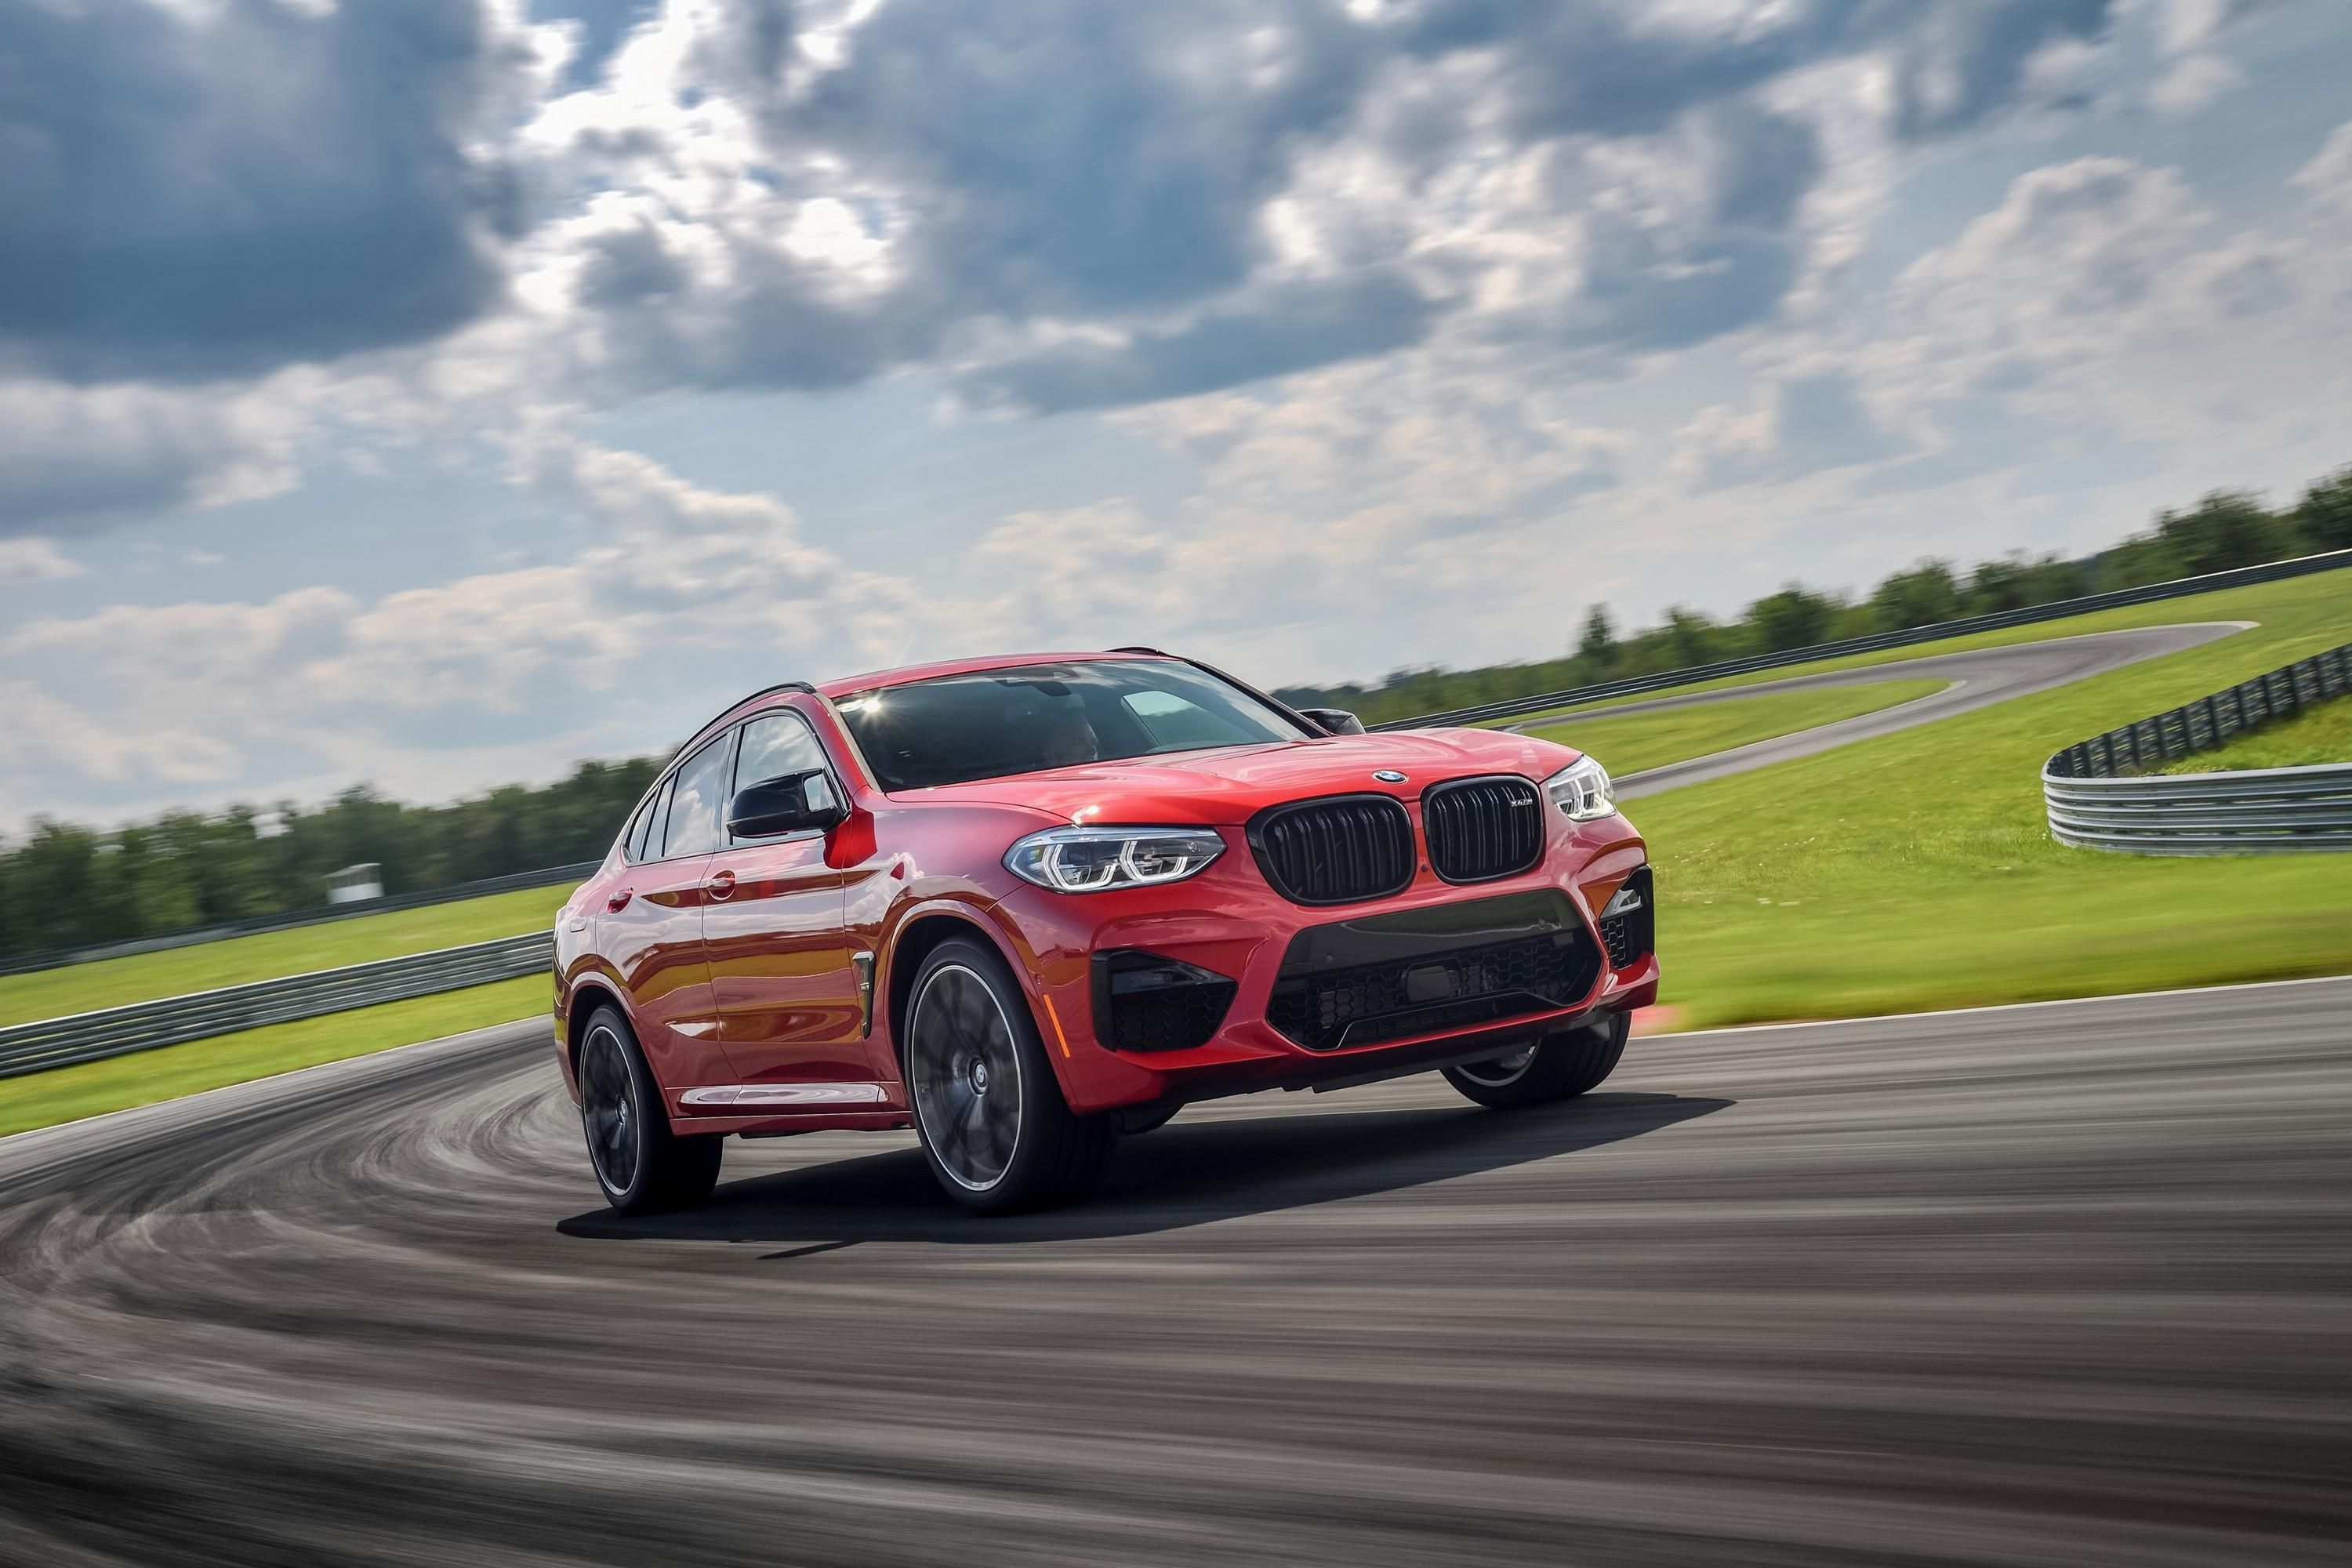 29 New 2020 BMW X3M Ordering Guide Speed Test for 2020 BMW X3M Ordering Guide